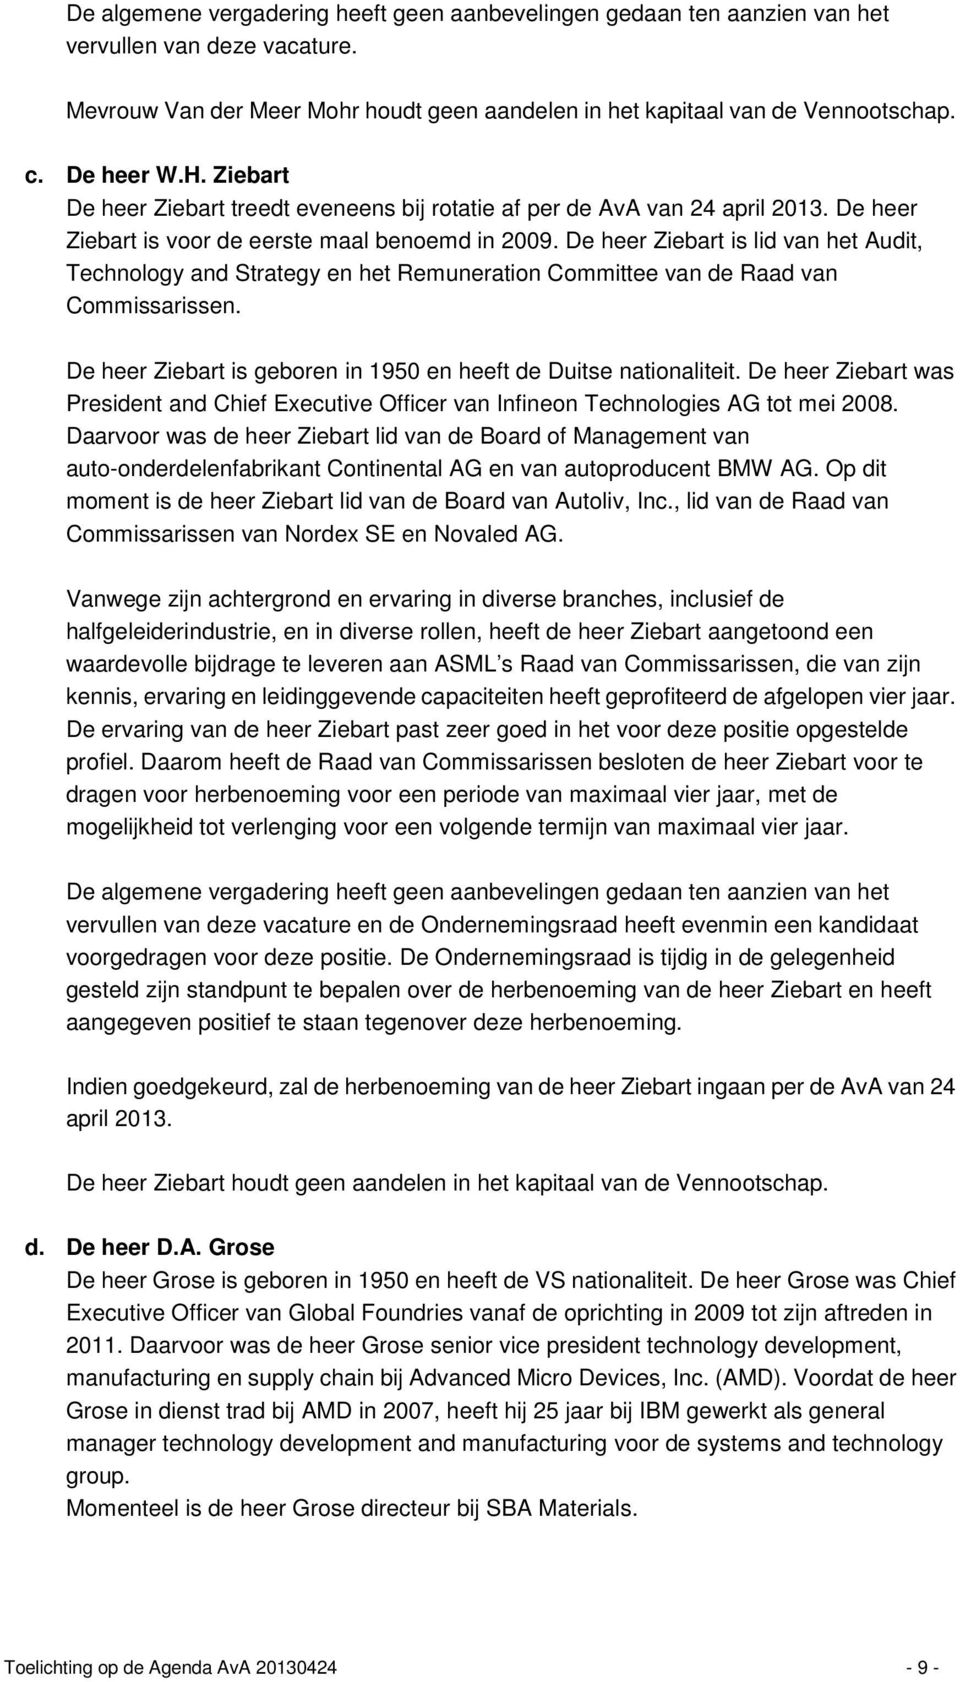 De heer Ziebart is lid van het Audit, Technology and Strategy en het Remuneration Committee van de Raad van Commissarissen. De heer Ziebart is geboren in 1950 en heeft de Duitse nationaliteit.